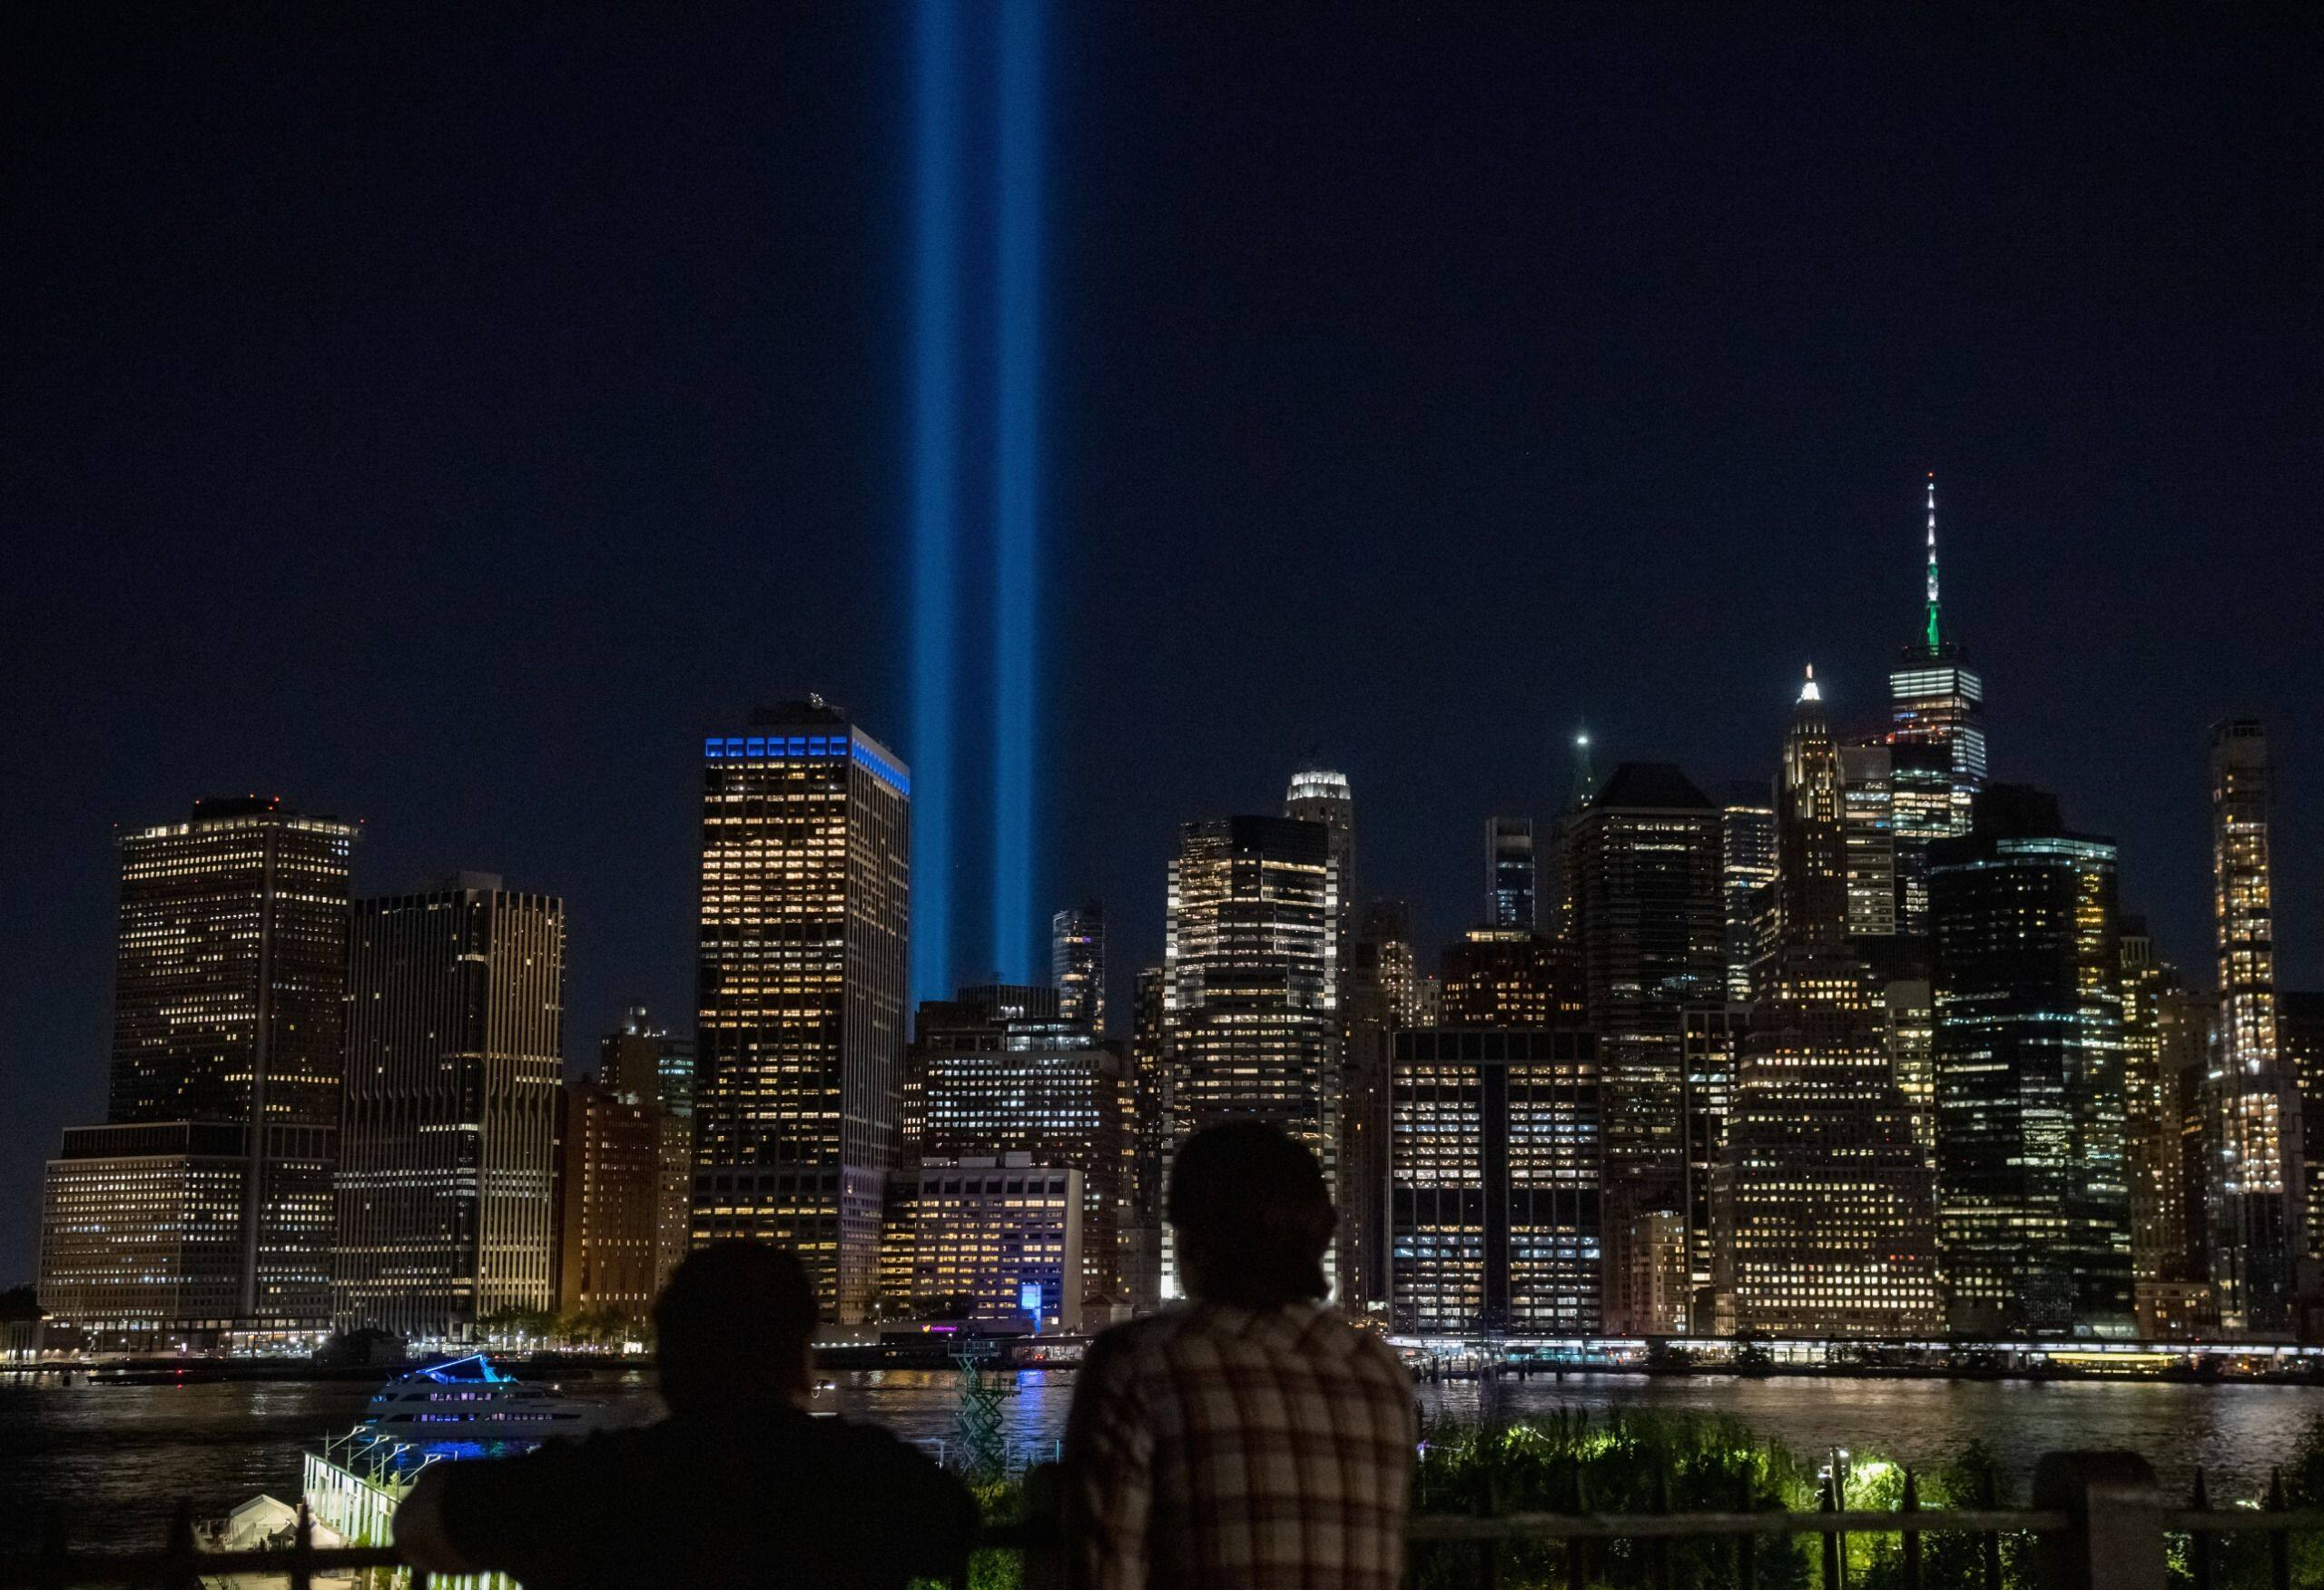 US Commemorates 20th Anniversary of September 11 Attacks